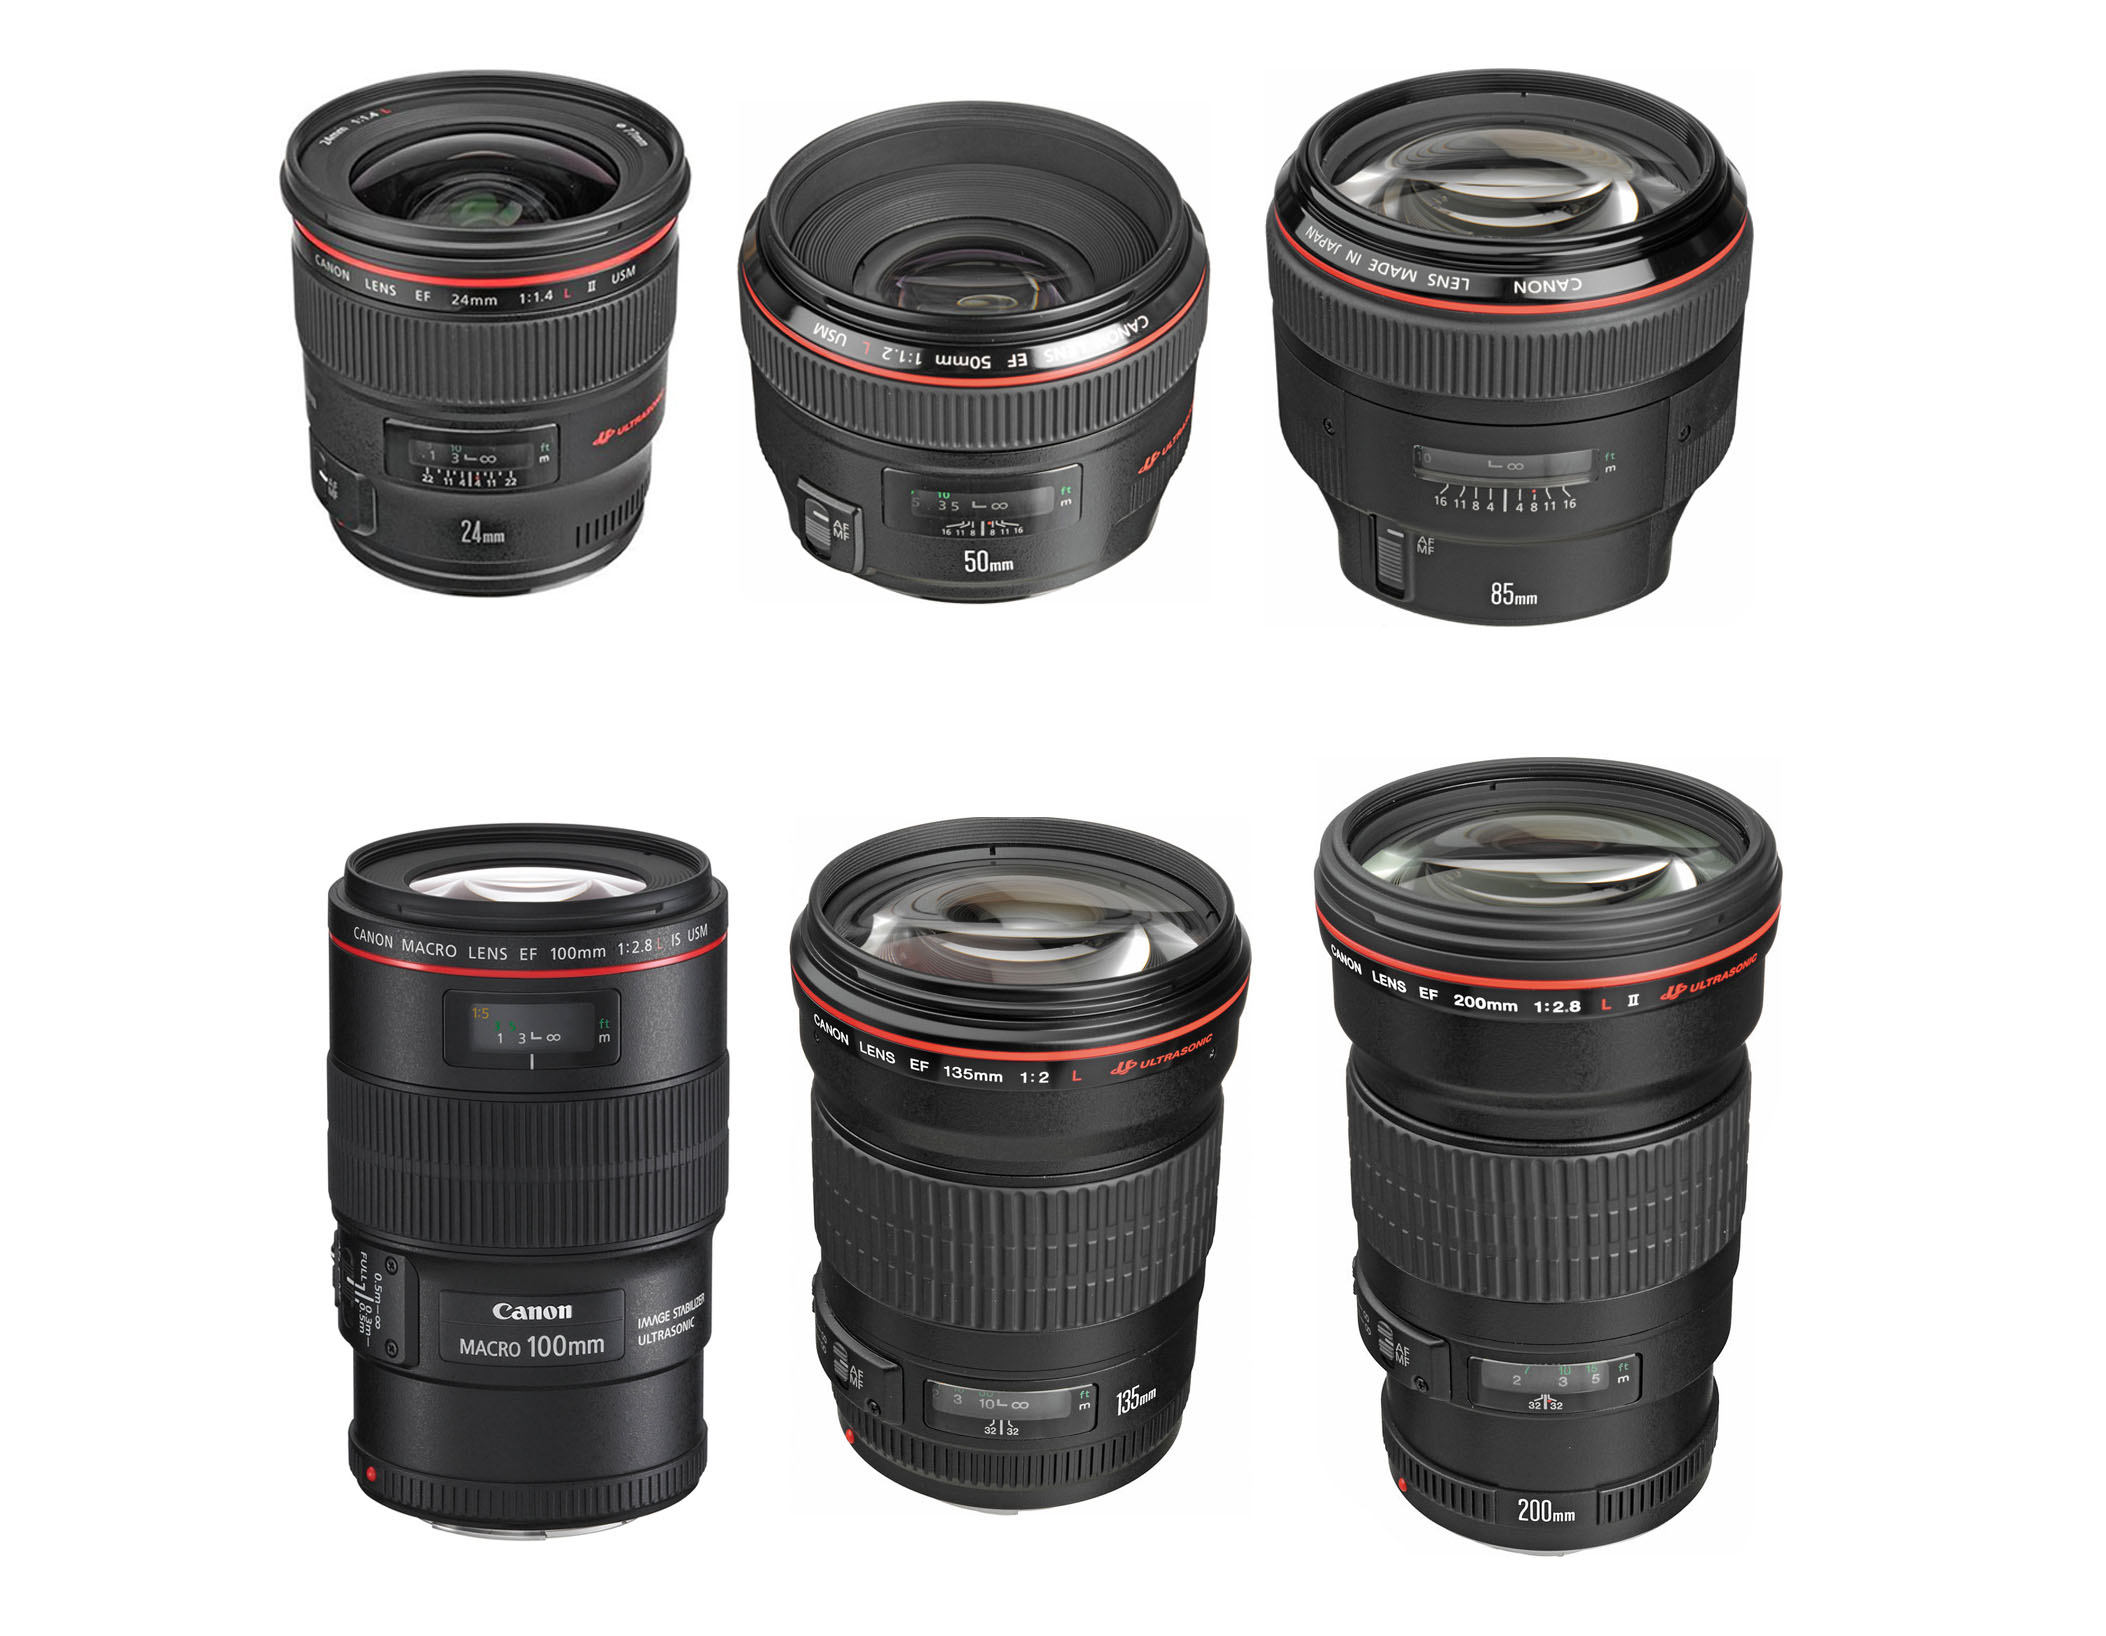 Canon-L-lenses-rebates.jpg